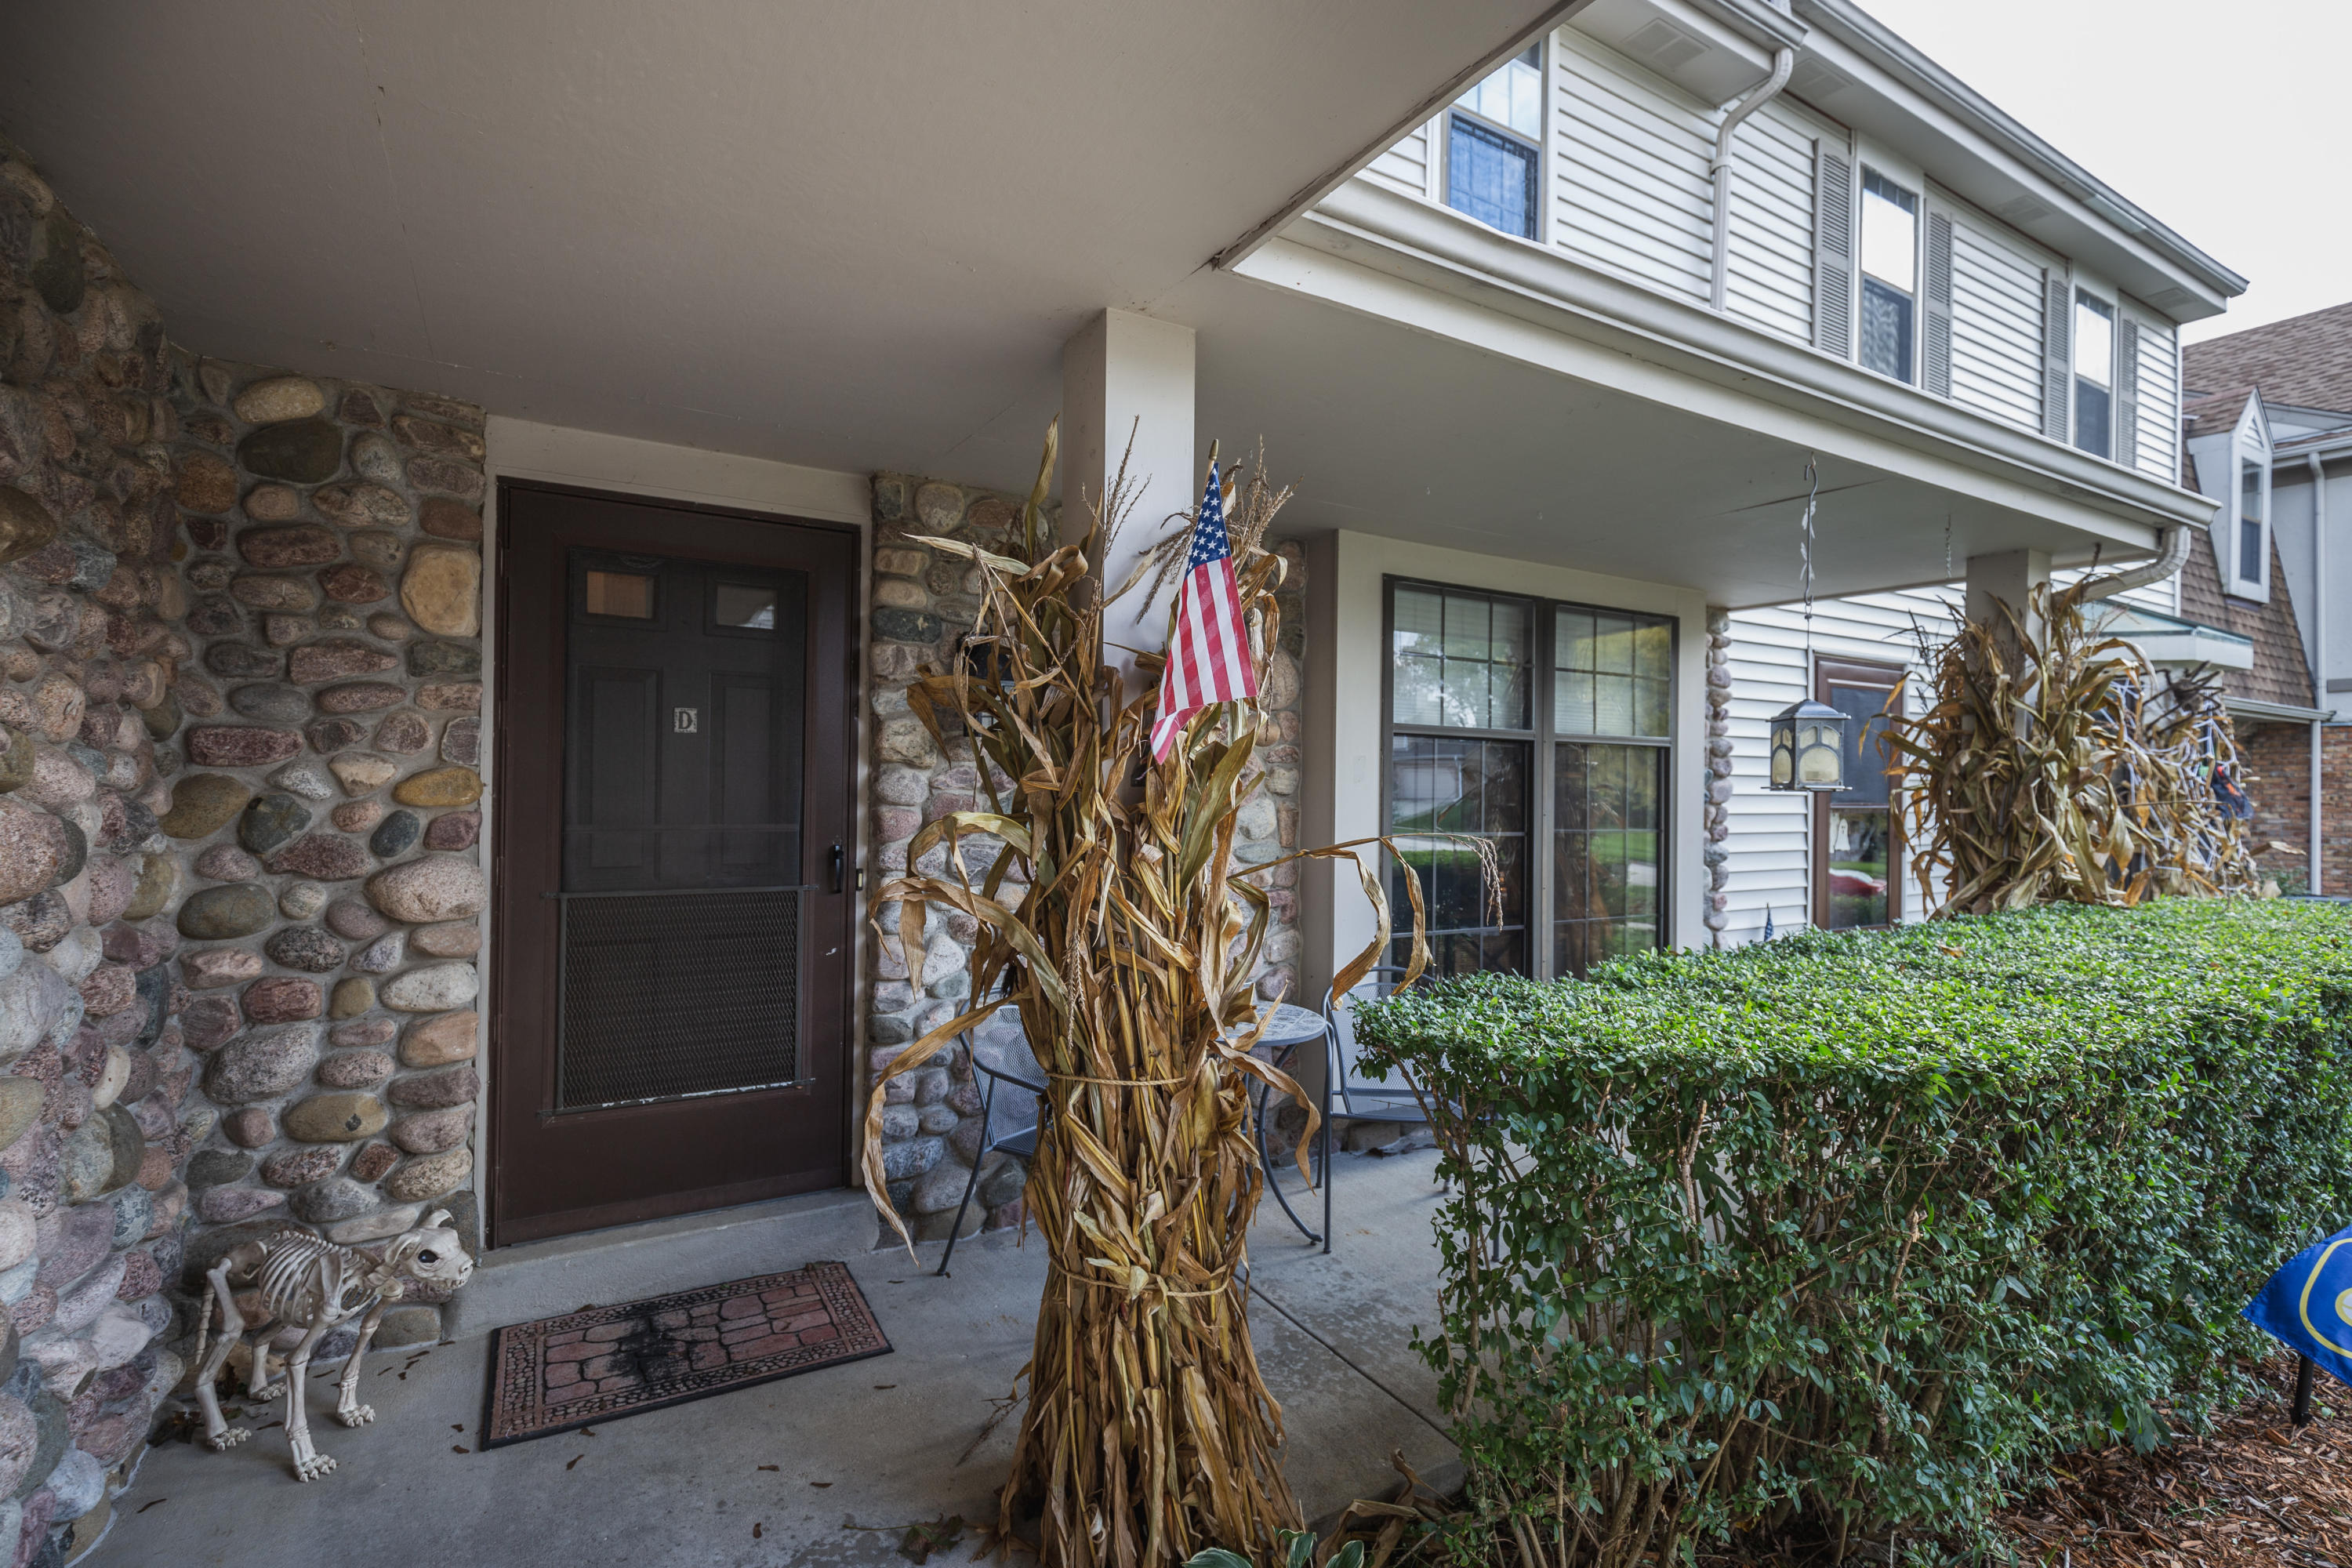 330 Willow Grove Dr, Pewaukee, Wisconsin 53072, 2 Bedrooms Bedrooms, ,1 BathroomBathrooms,Condominiums,For Sale,Willow Grove Dr,1,1610140